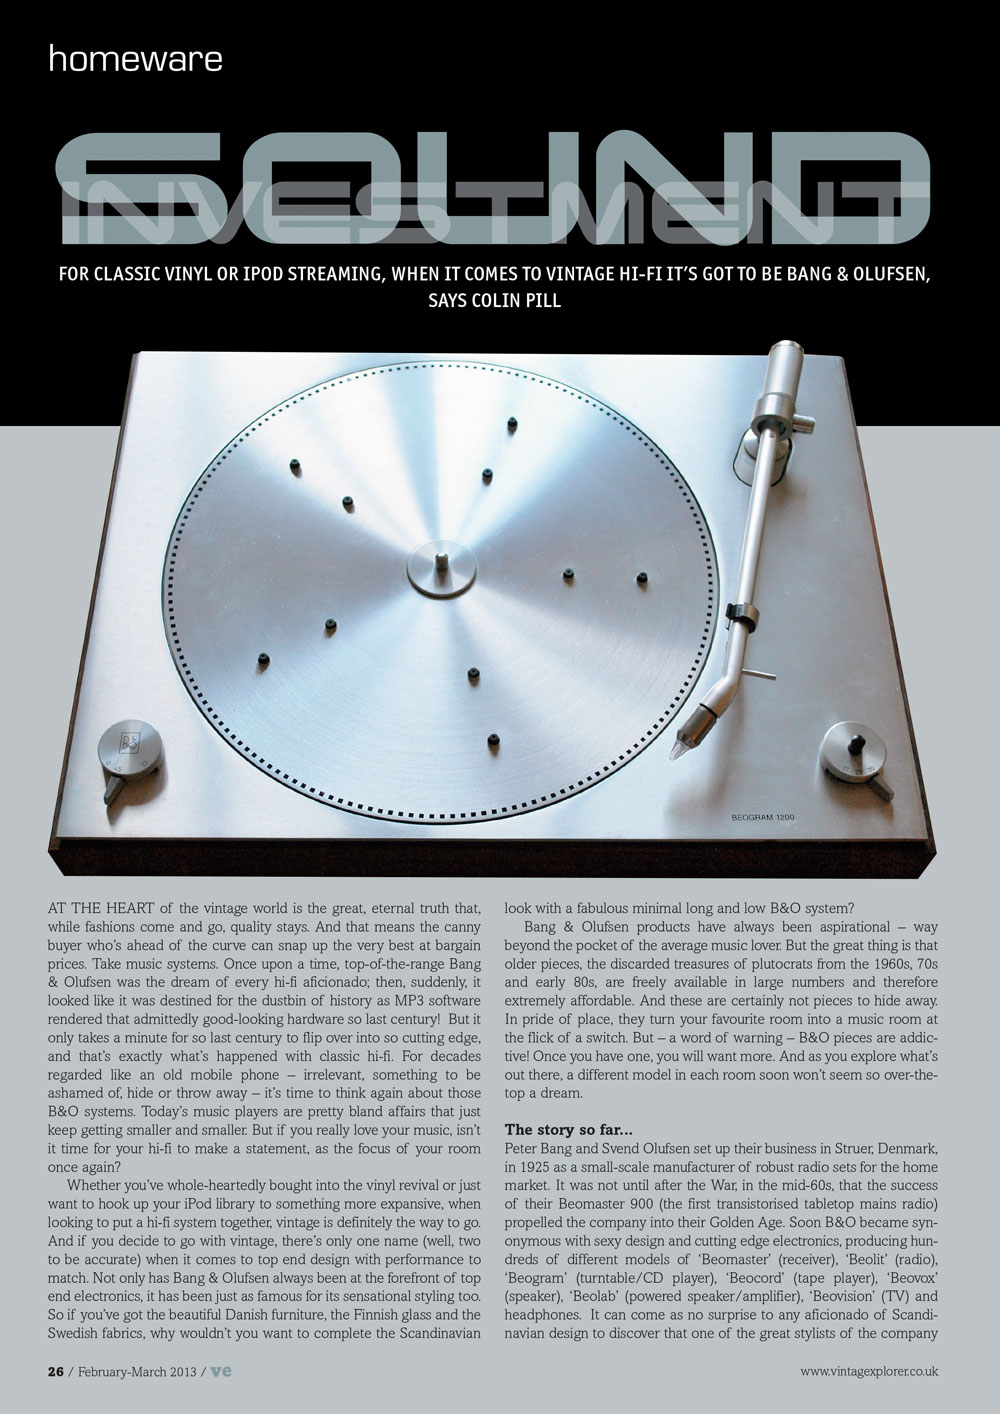 ISSUE 8 - FEB/MAR 2013 - SOUND INVESTMENT For classic vinyl or iPod streaming, when it comes to vintage Hi-Fi, it's got to be Bang & Olufsen says Colin Pill.